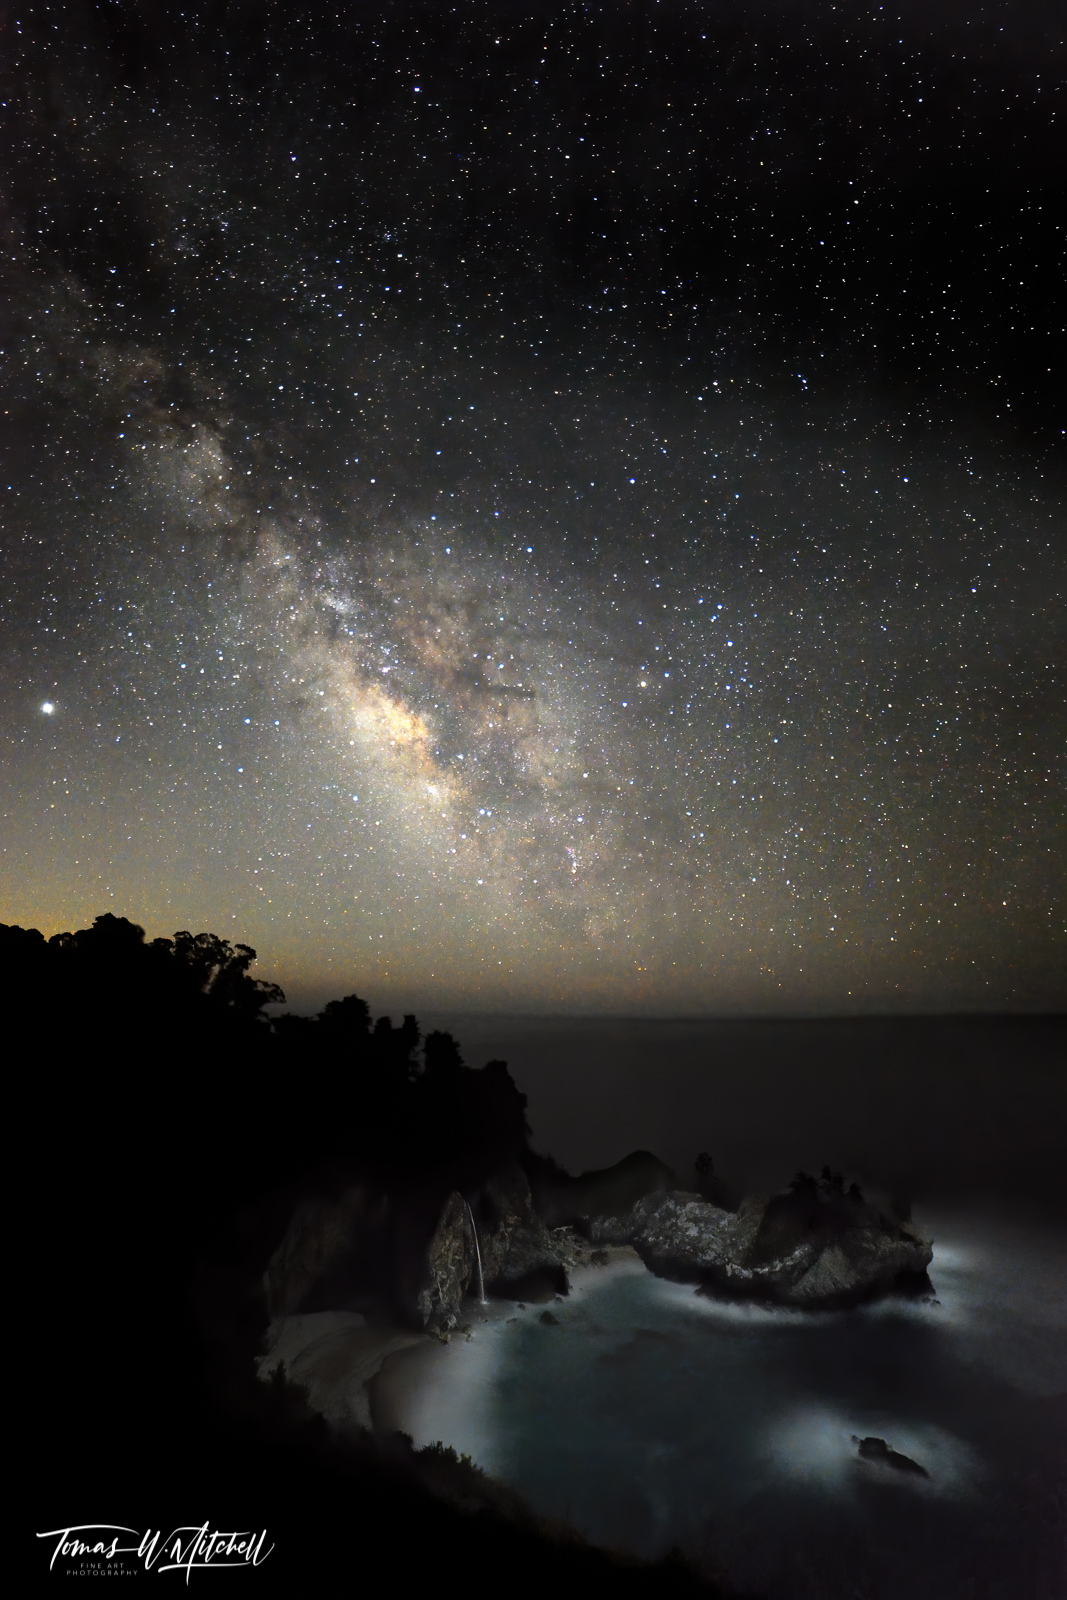 limited edition, fine art, prints, photograph, mcway falls, big sur, california, milky way, water falls , lagoon, summer, night, beaches, starlit, neverland, photo